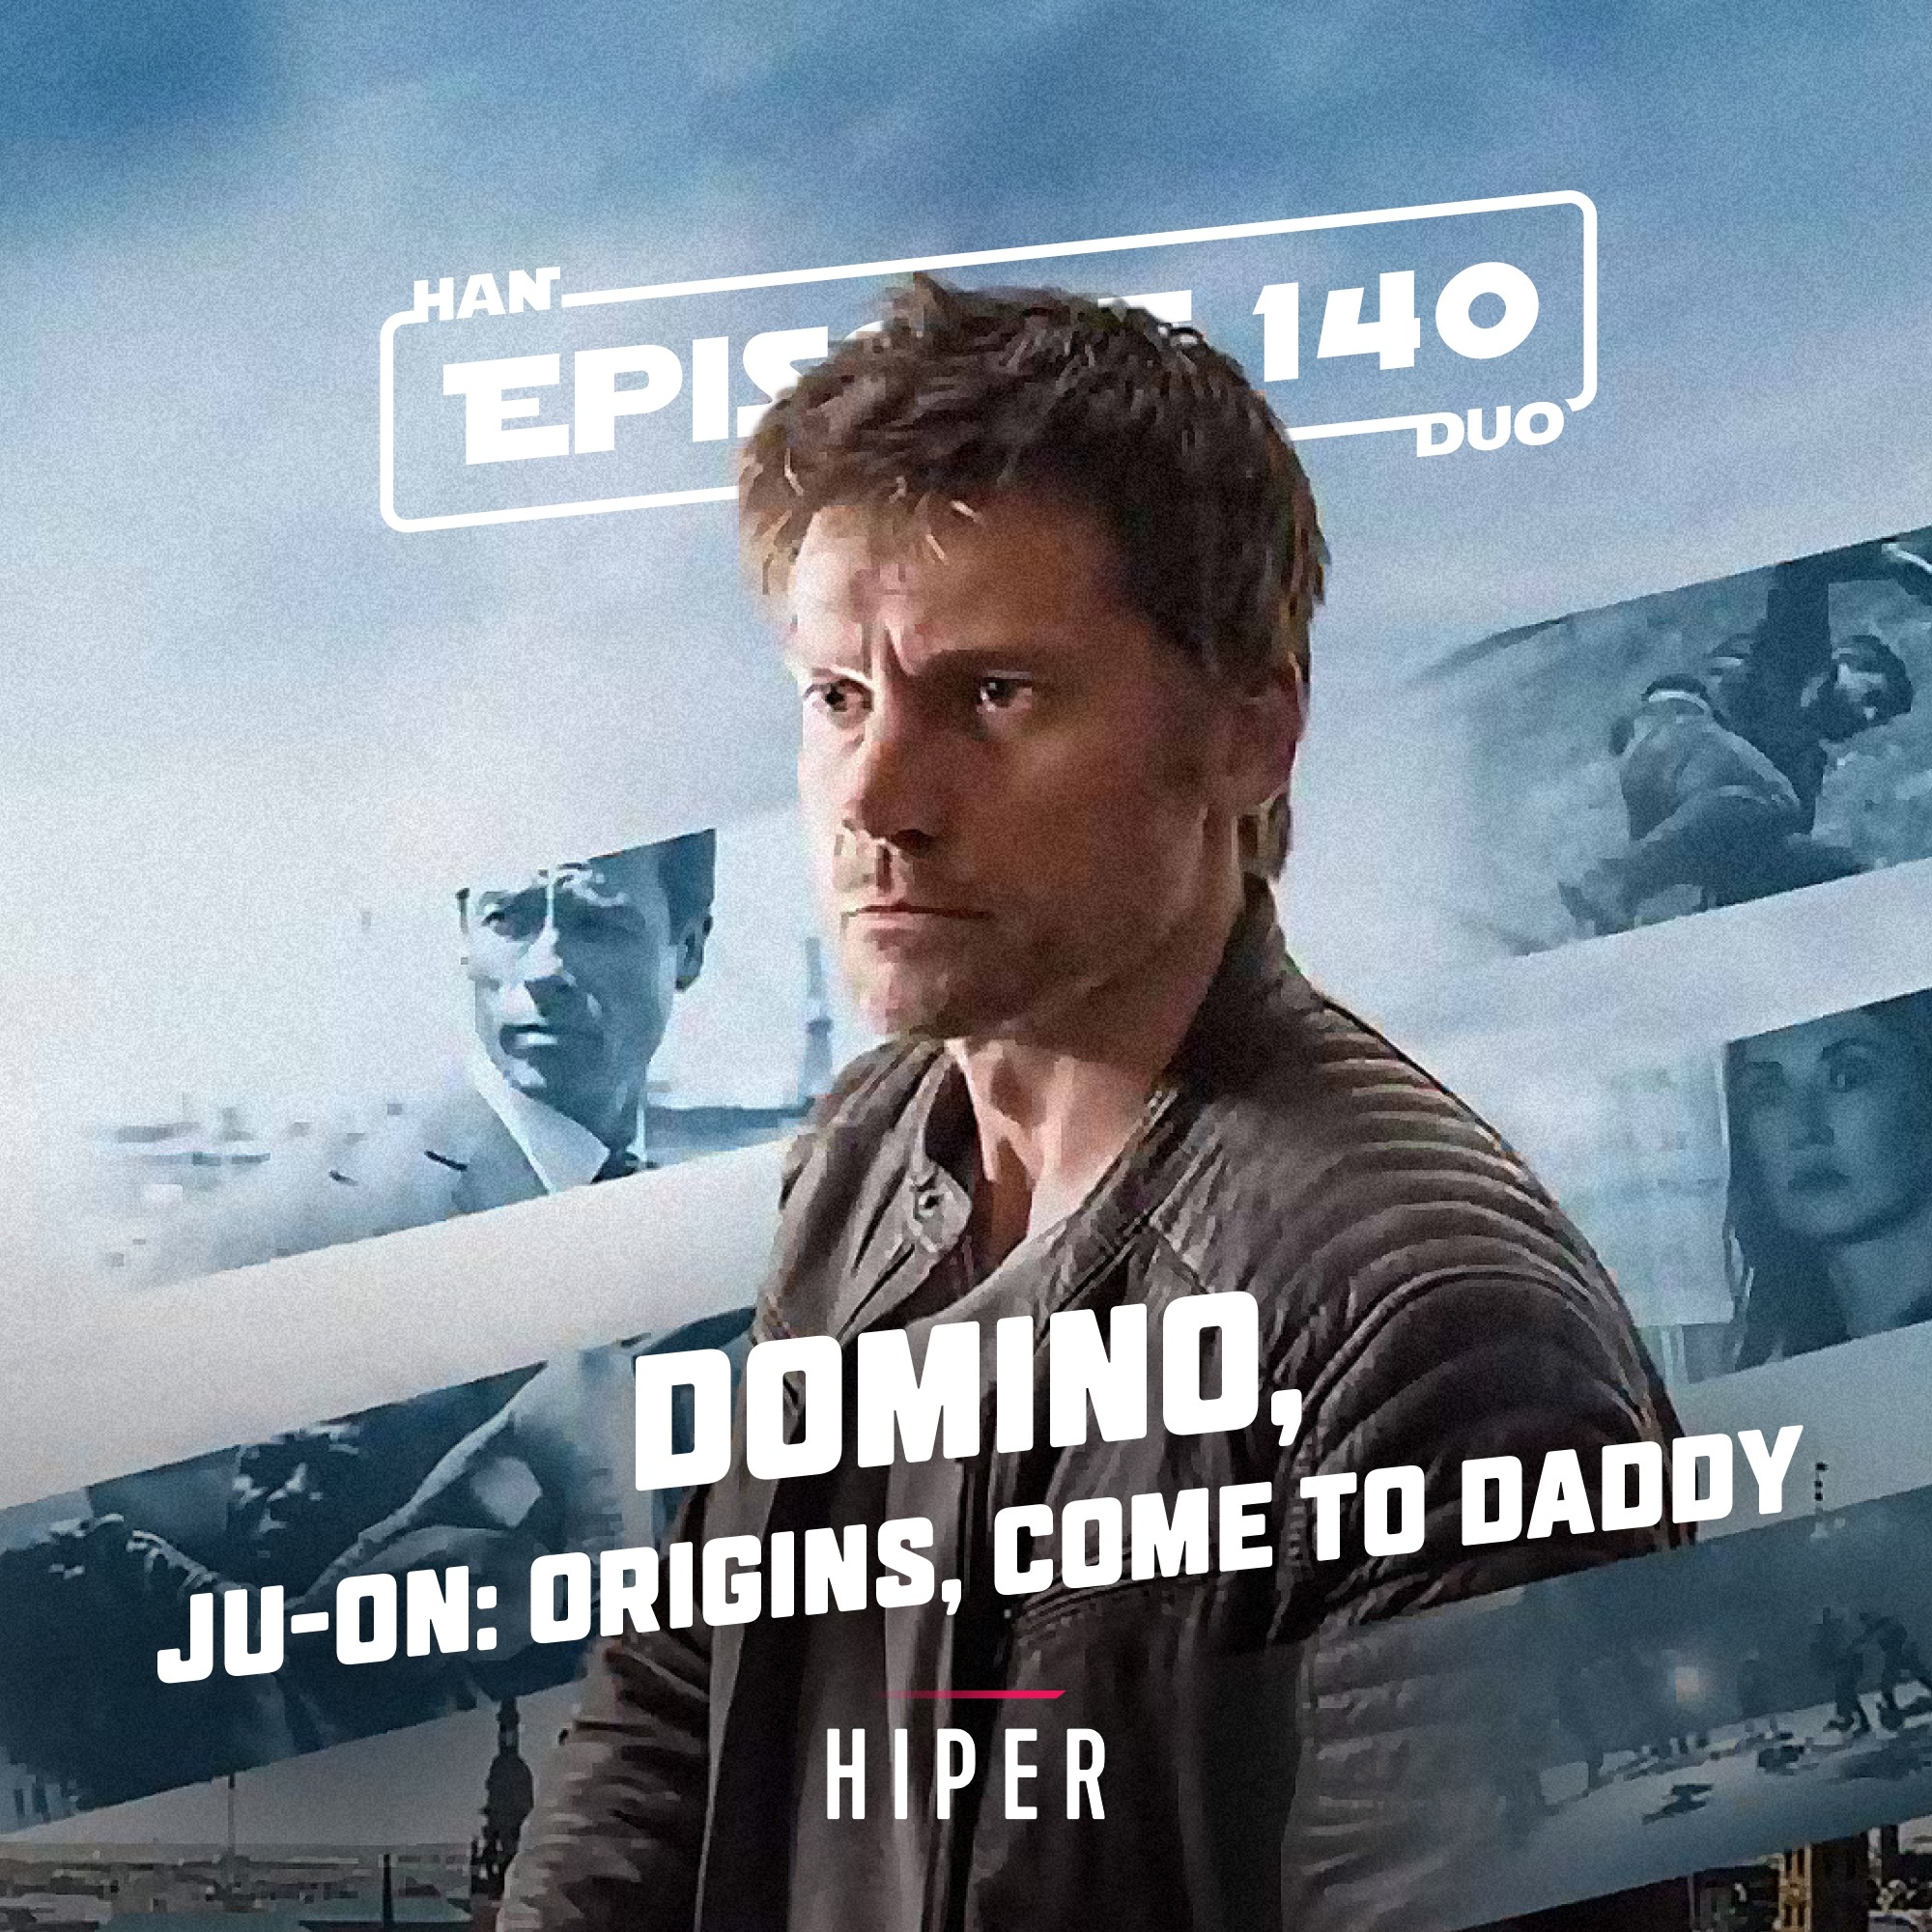 Han Duo #140: Domino, Ju-On: Origins, Come to Daddy